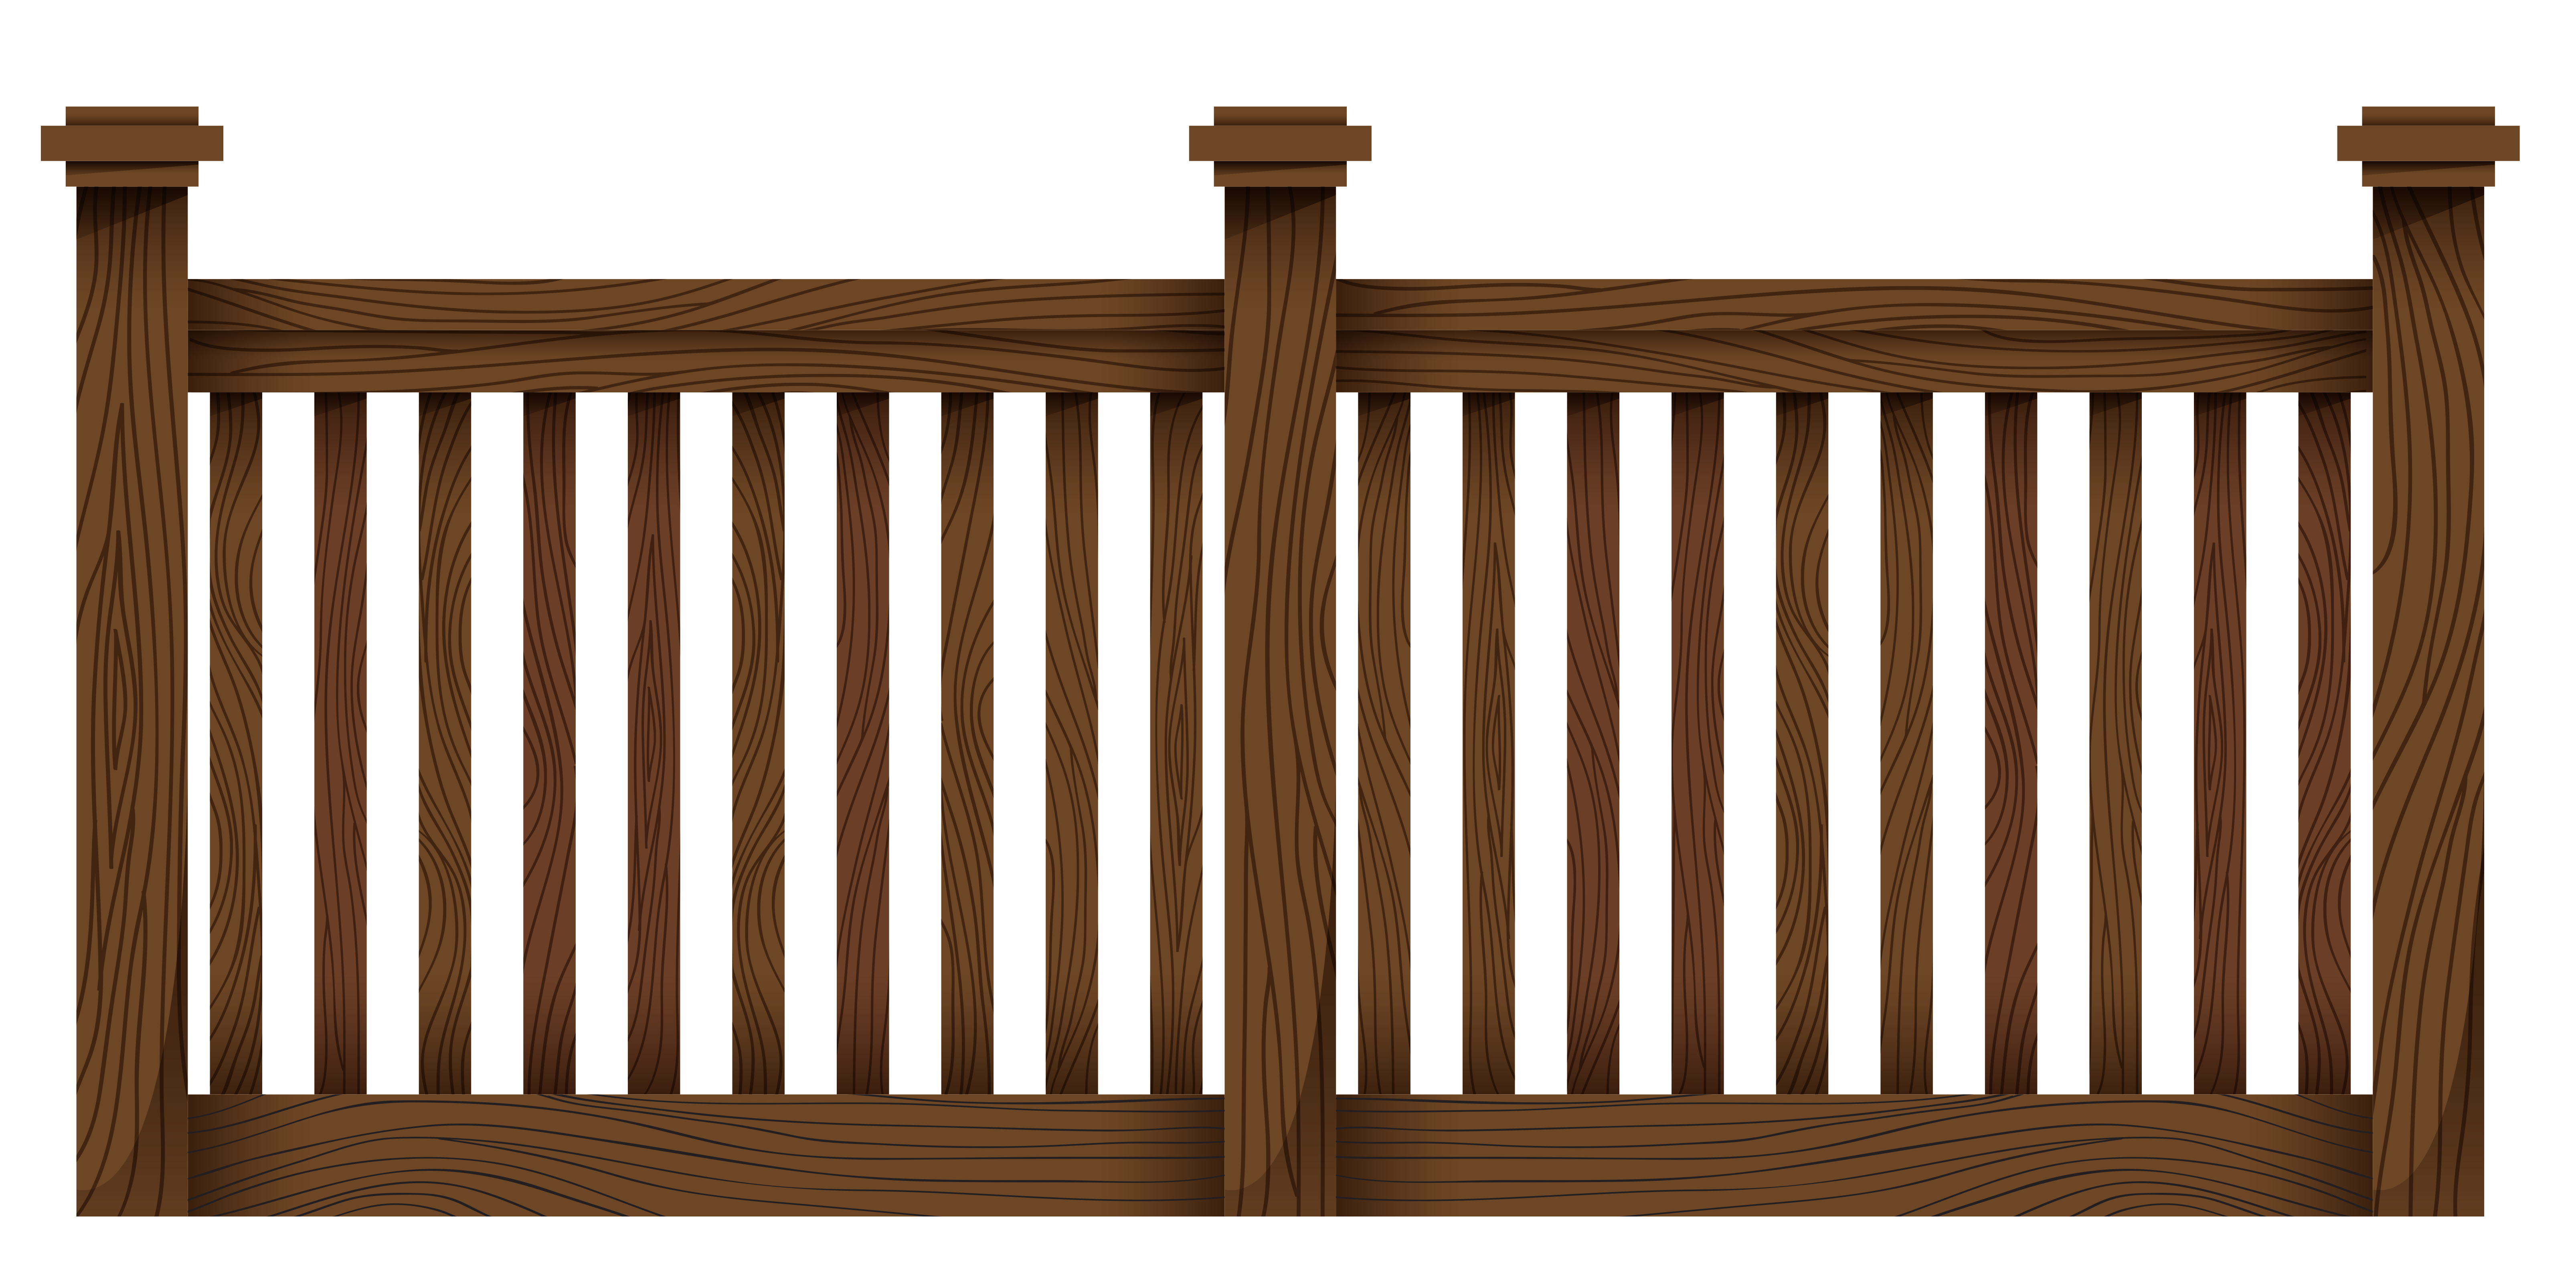 Transparent wooden picture gallery. Fencing clipart backyard fence